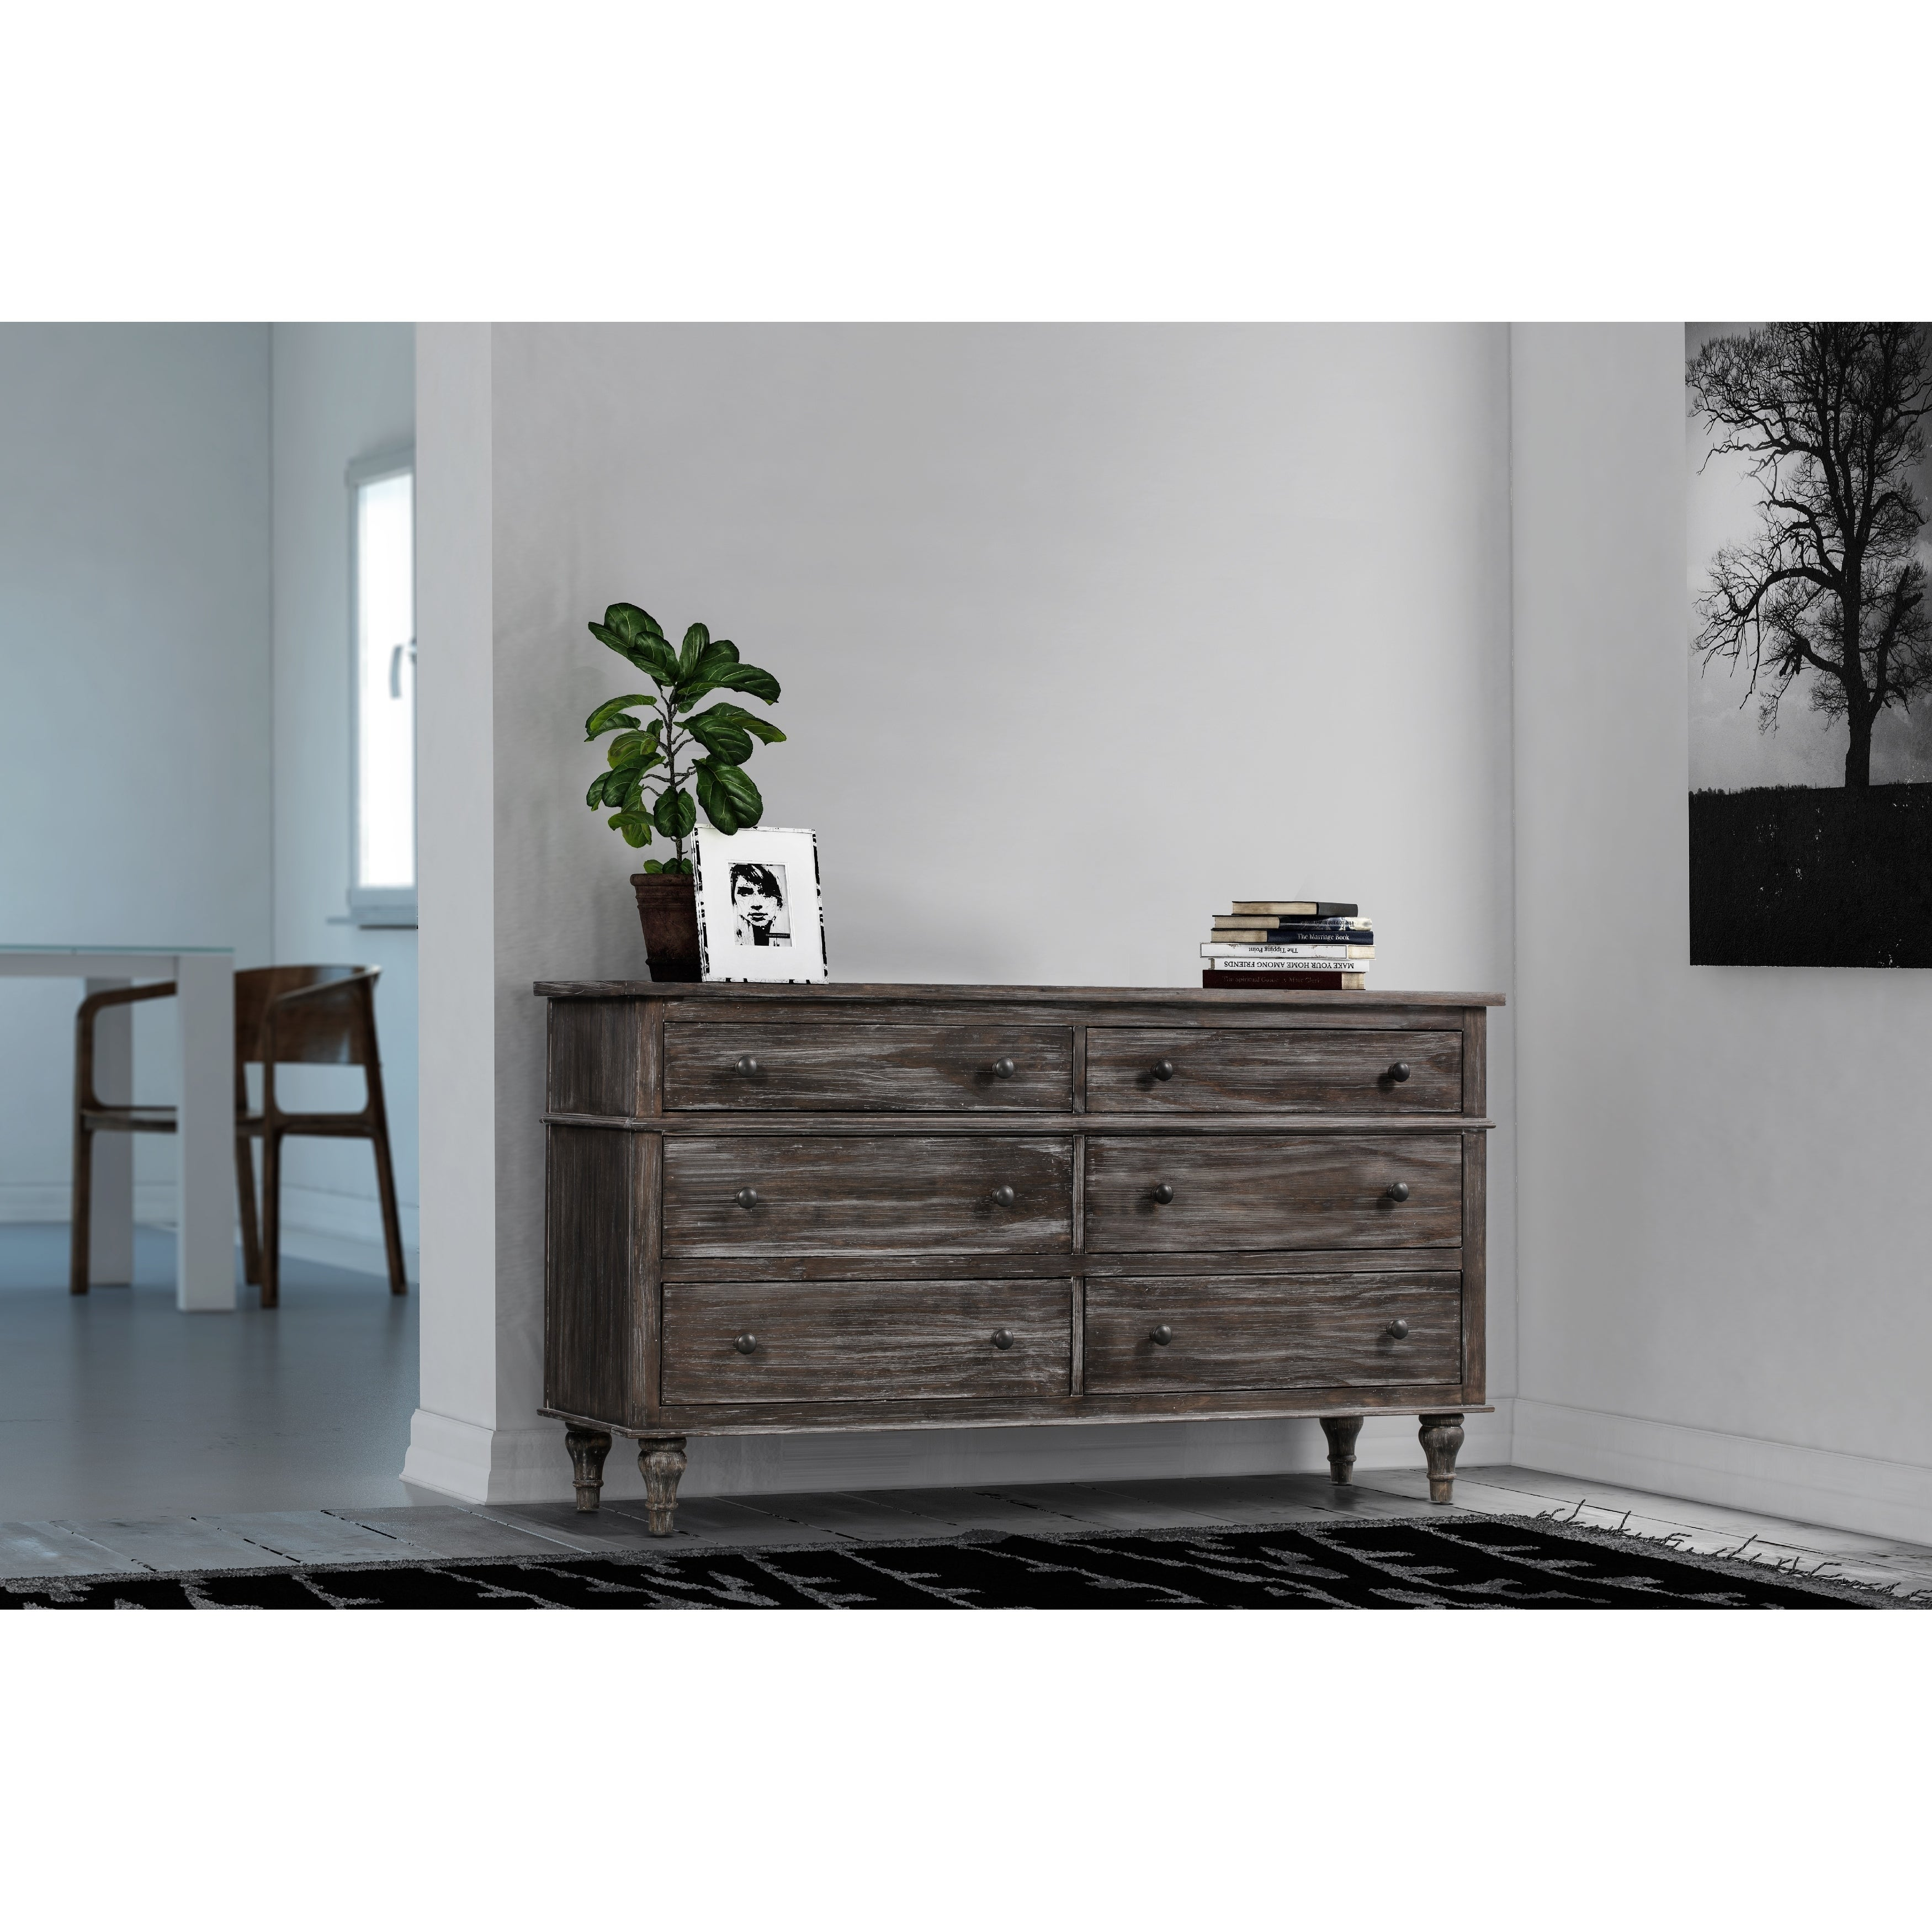 Shop valles distressed charcoal 6 drawer dresser free shipping today overstock com 23539961